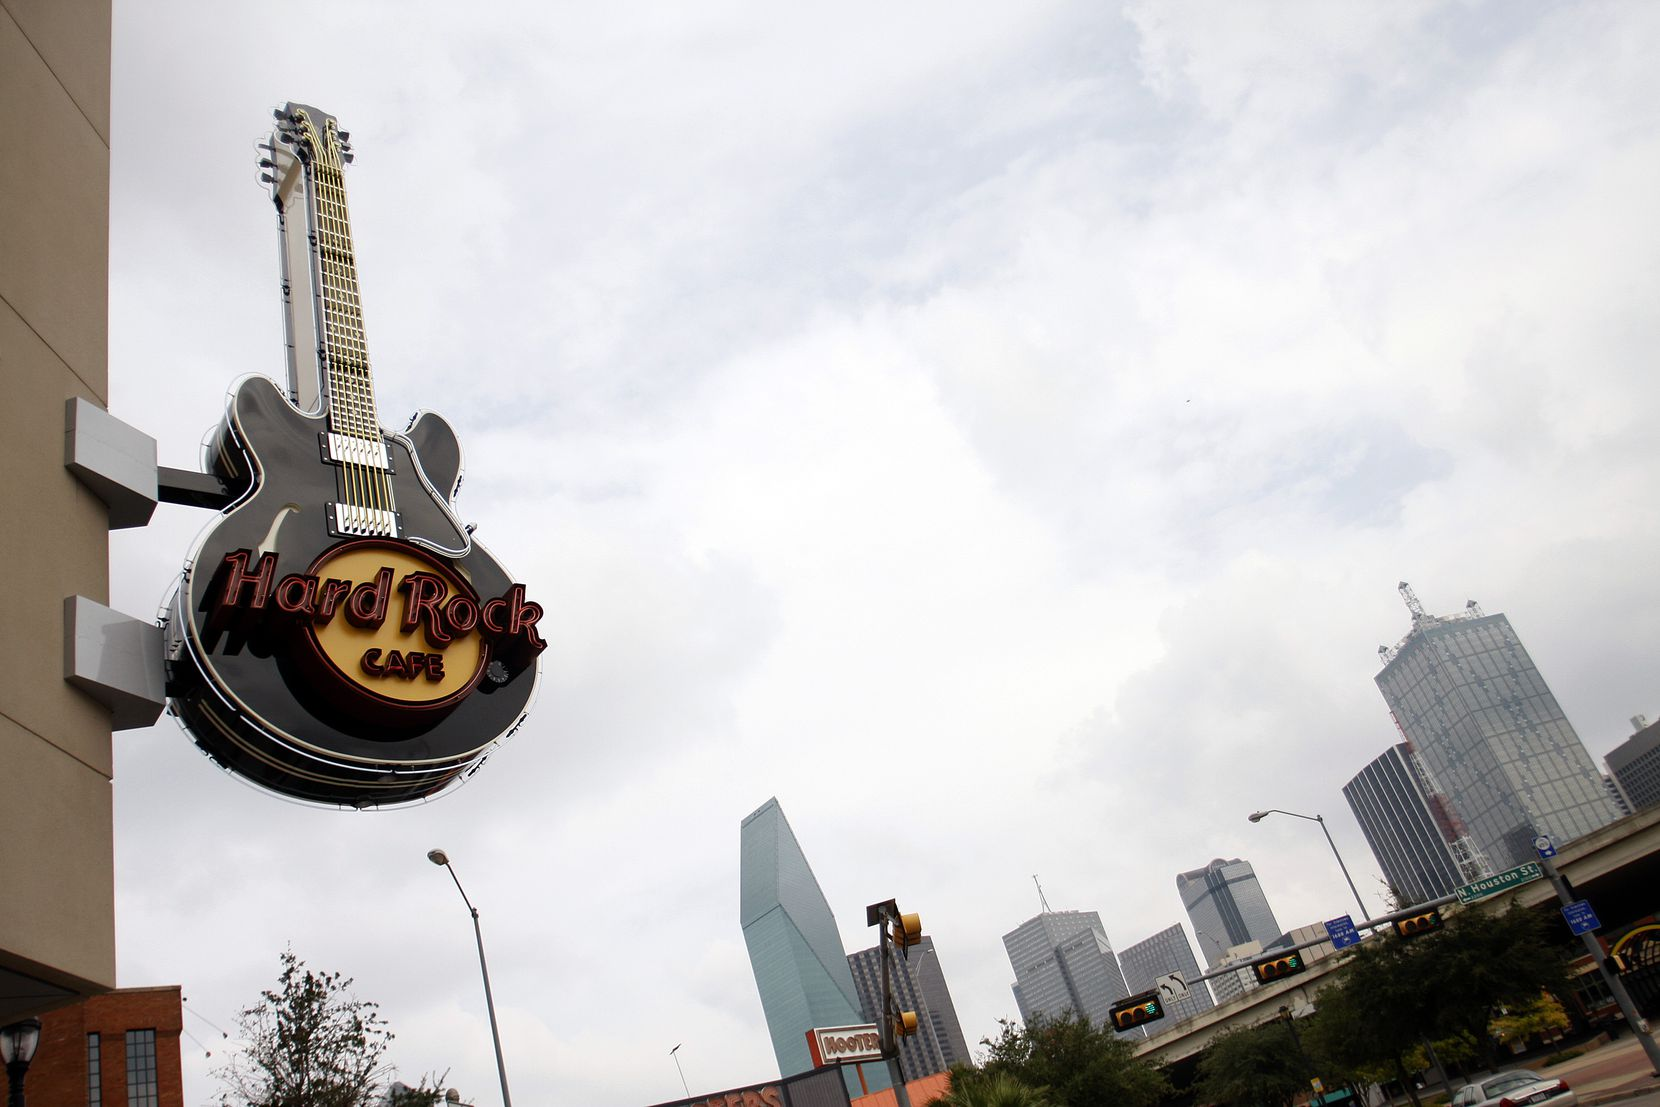 Hard Rock Cafe is the only tenant in the retail center at Lamar and Houston streets.